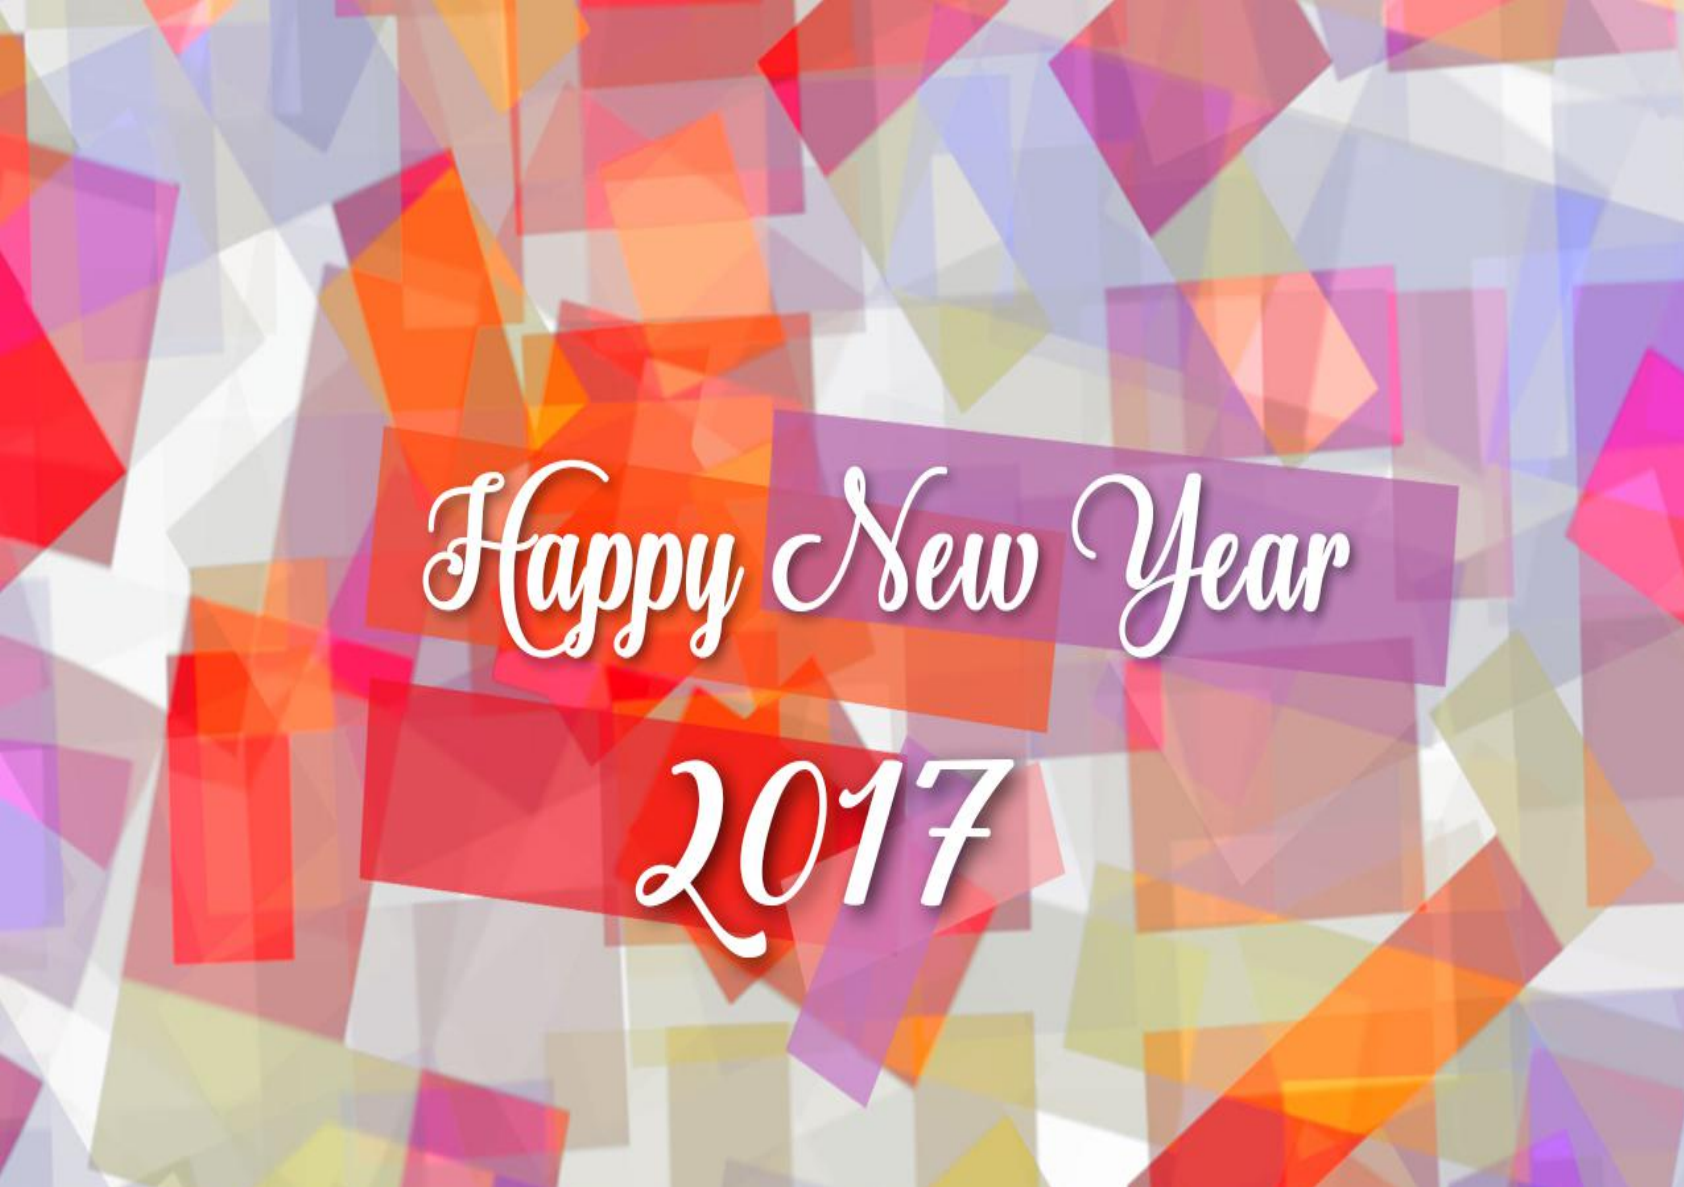 2017 Happy New Year Card Free Download